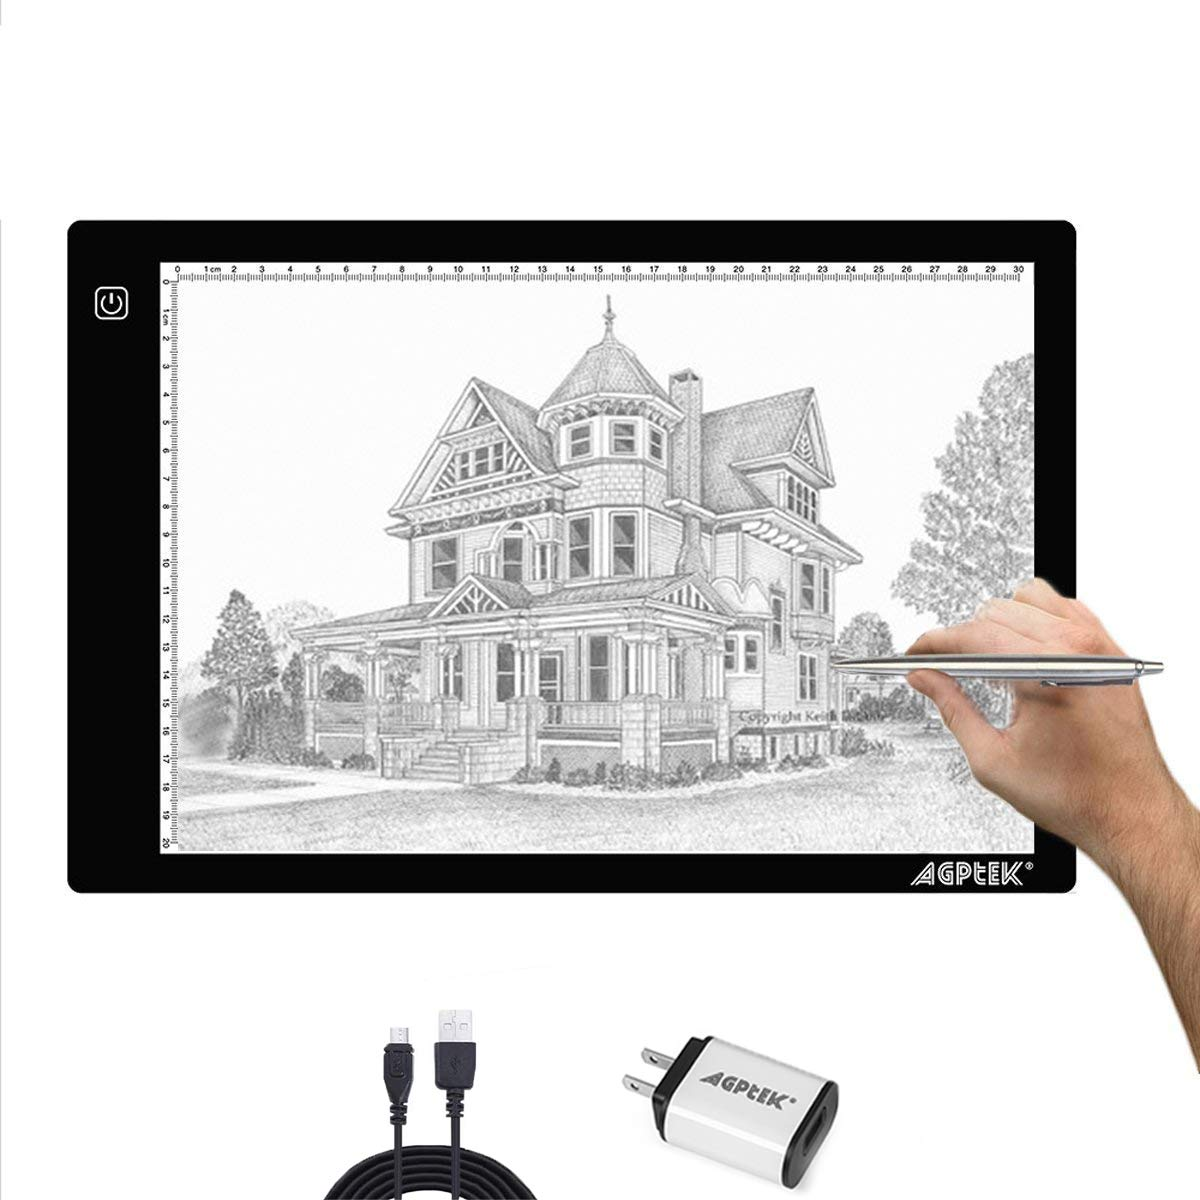 AGPtek A4 Ultra-thin Portable LED Artcraft Tracing Light Pad USB Cable + Wall Adapter Powered Brightness Control For Artists, Drawing, Sketching, Animation, X-ray Viewing, Sewing, Tattoo, Quilting by AGPTEK